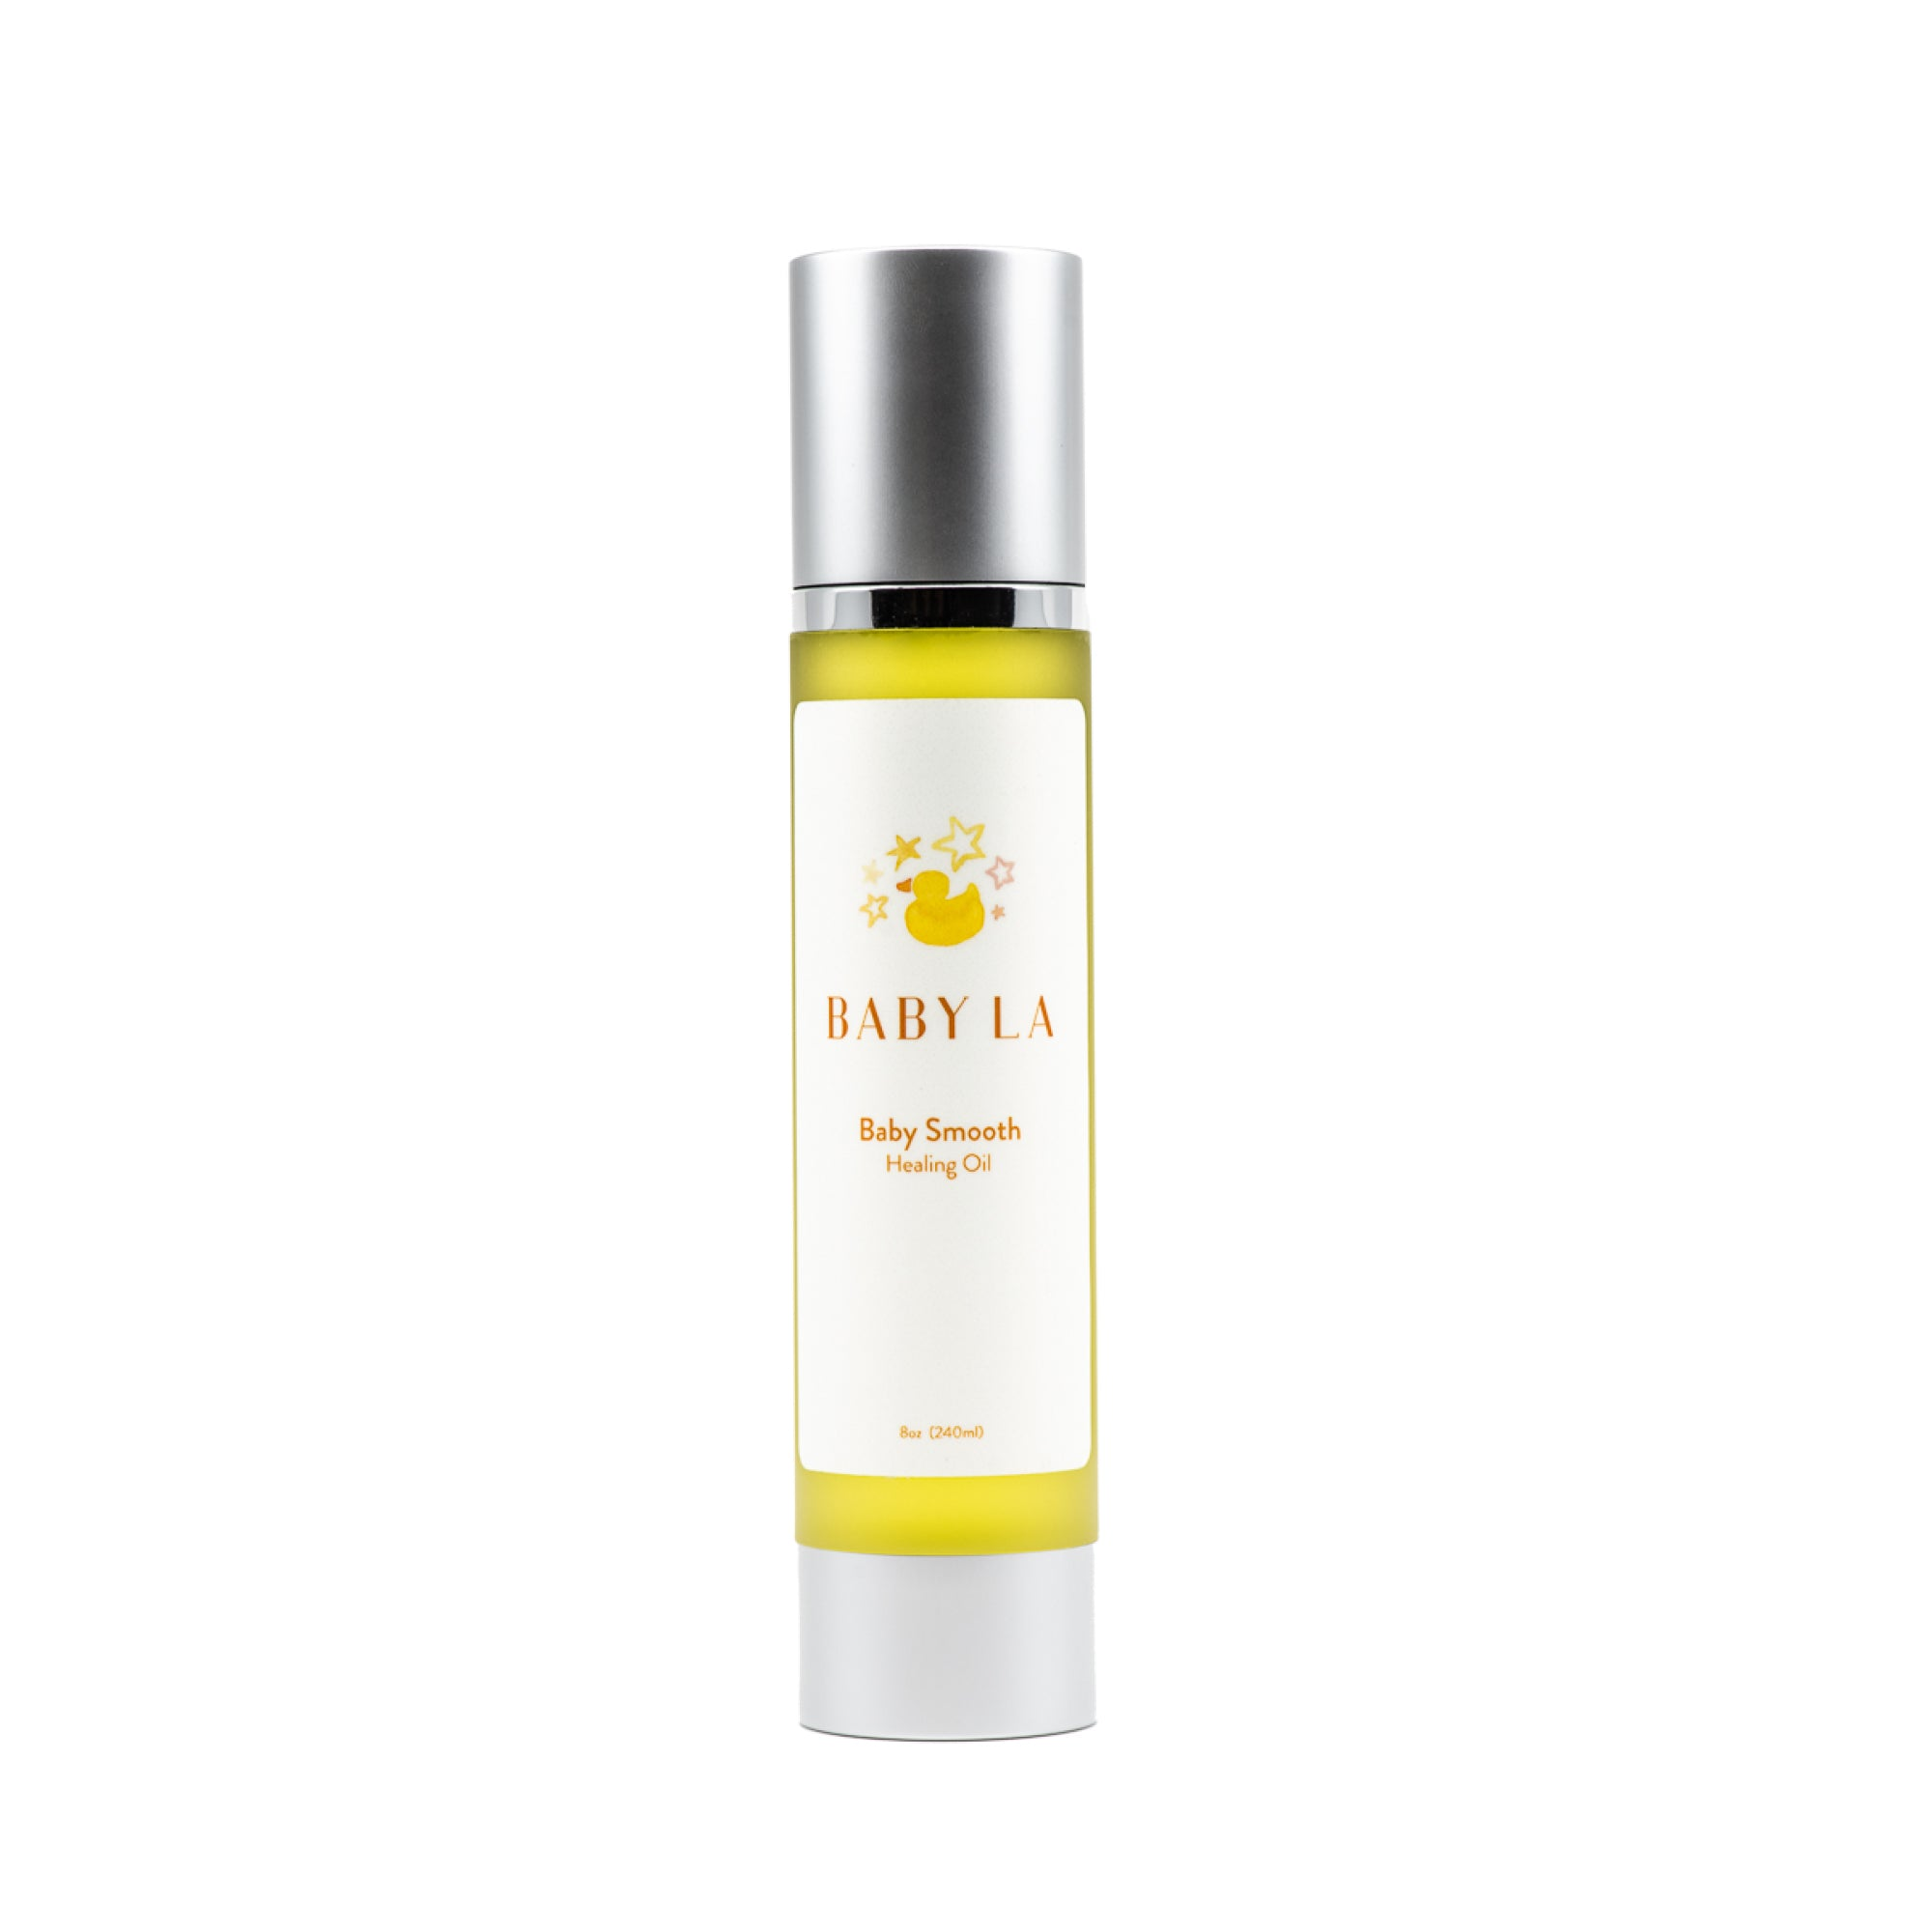 Baby La Baby Smooth Healing Oil (0.5oz)